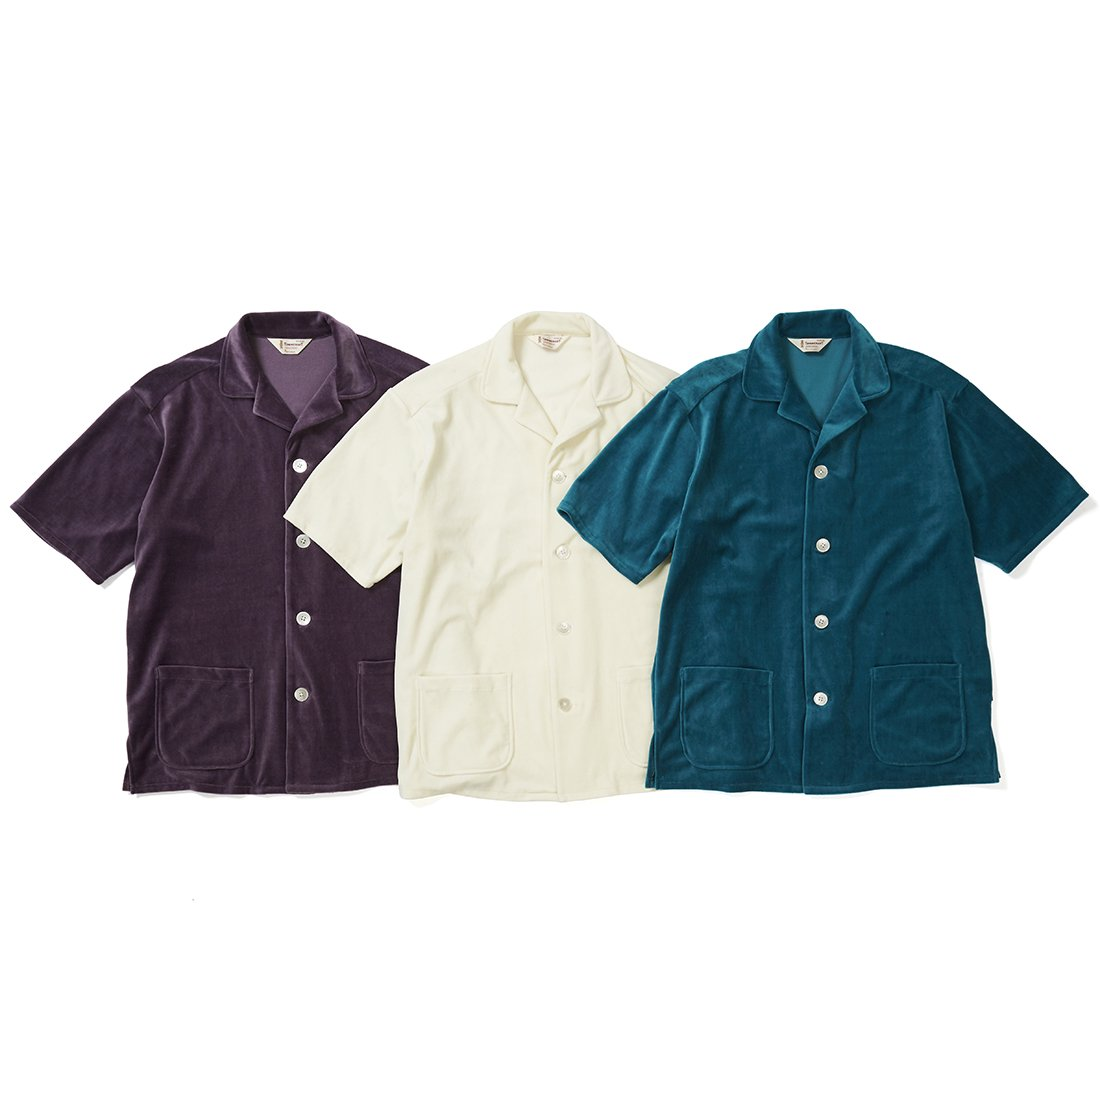 TOWN CRAFT × CAPTAINS HELM #VELOUR BEACH SHIRTS